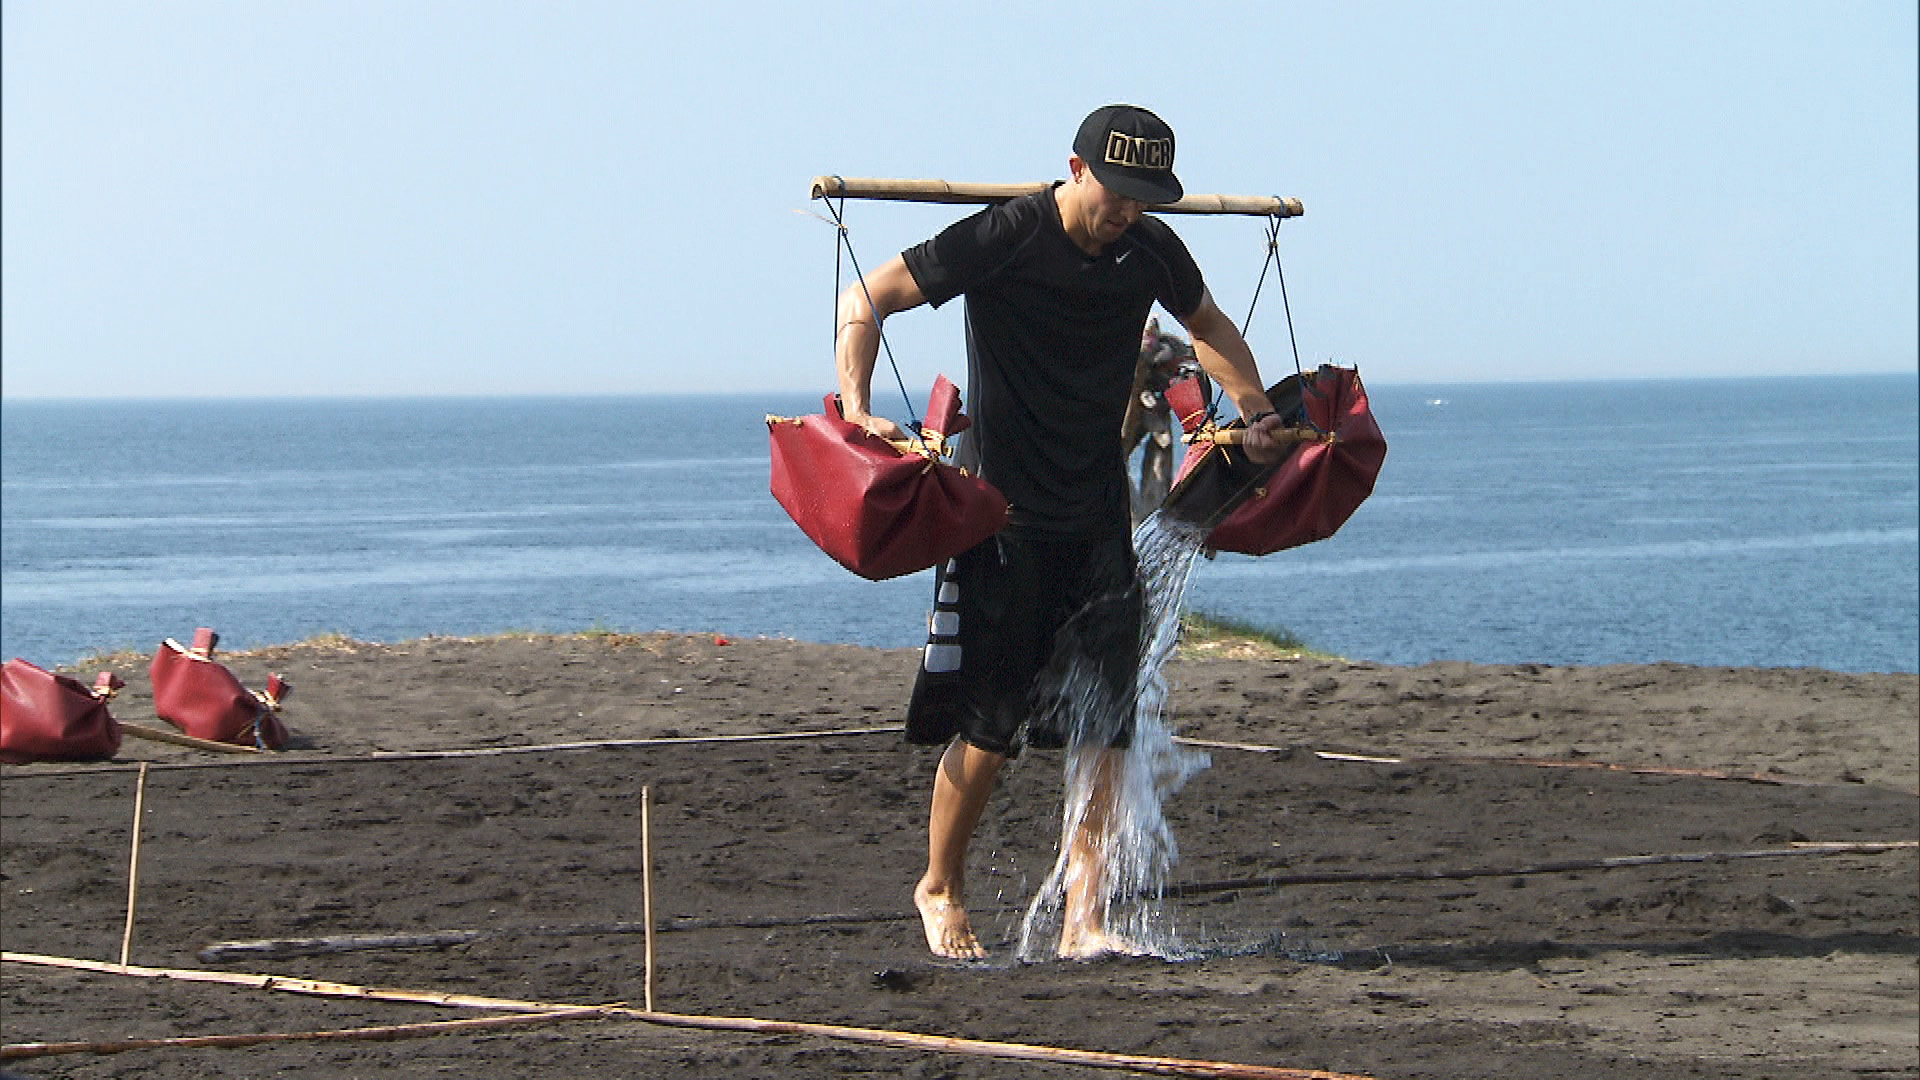 Matt helps a Balinese salt farmer by carrying water from the ocean.